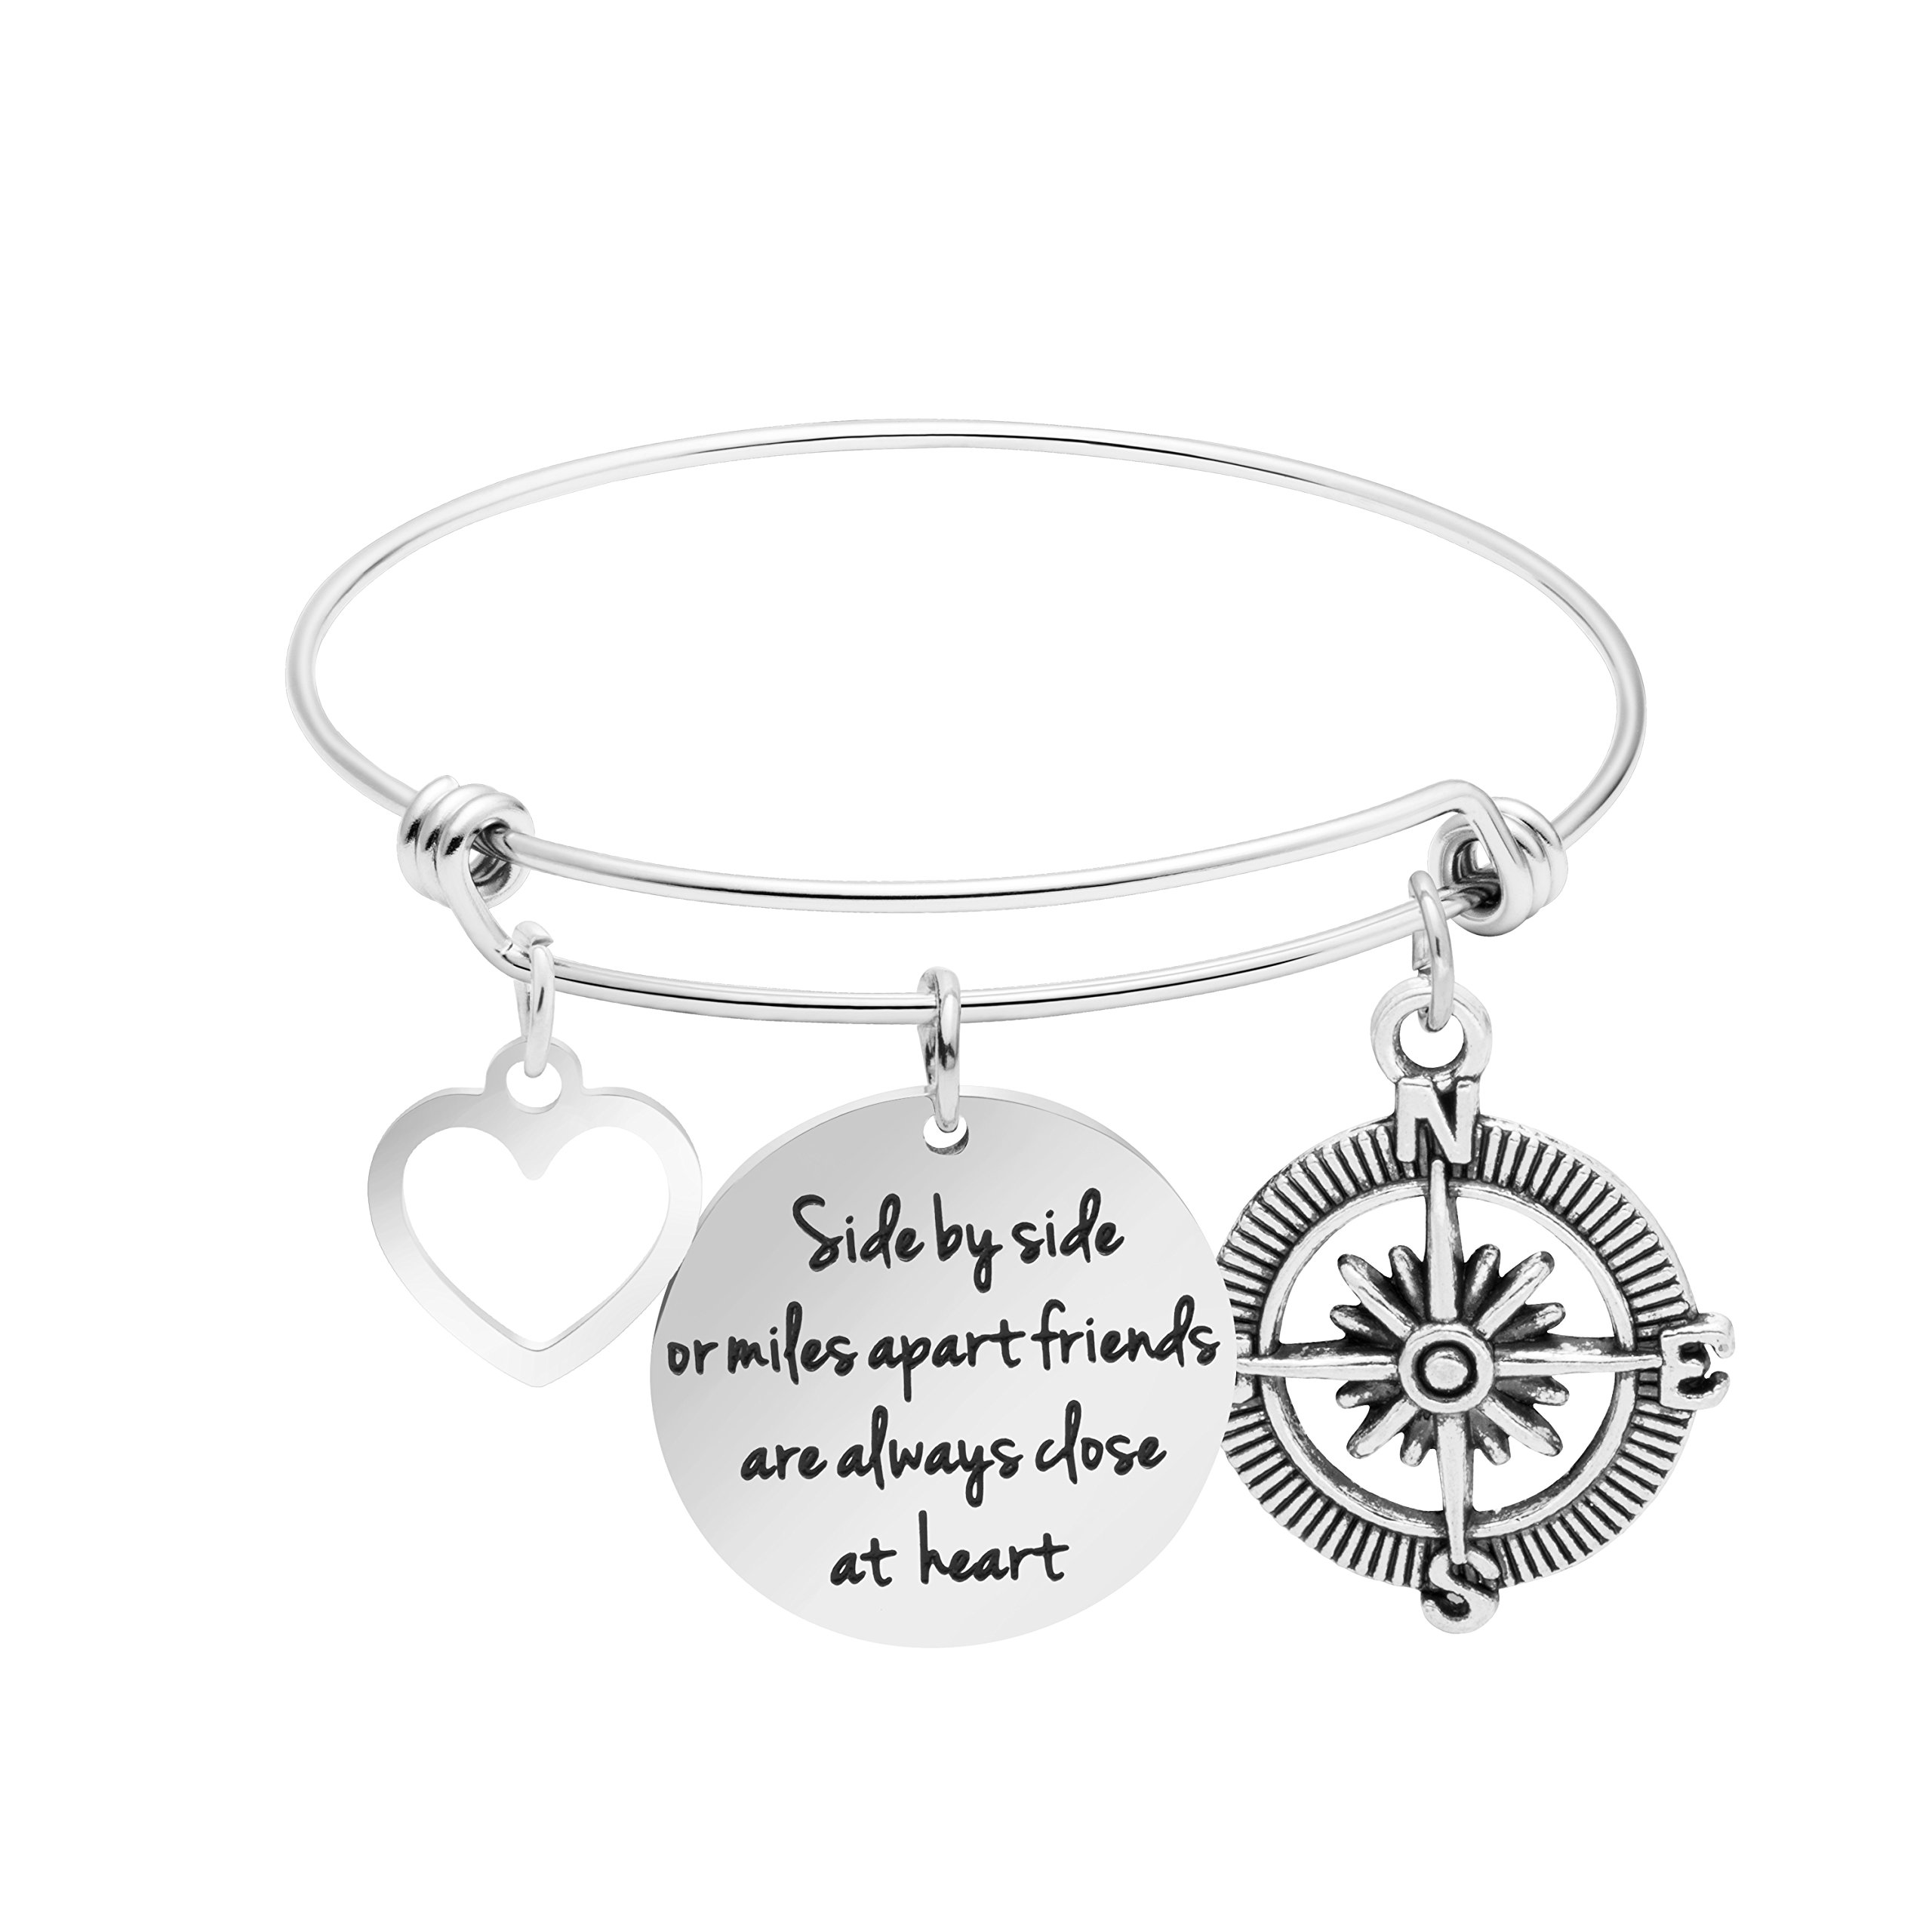 Awegift Friendship Jewelry Best Friend Bracelet Graduation Gift for Her Side by Side or Miles Apart Friends are Always Close at Heart